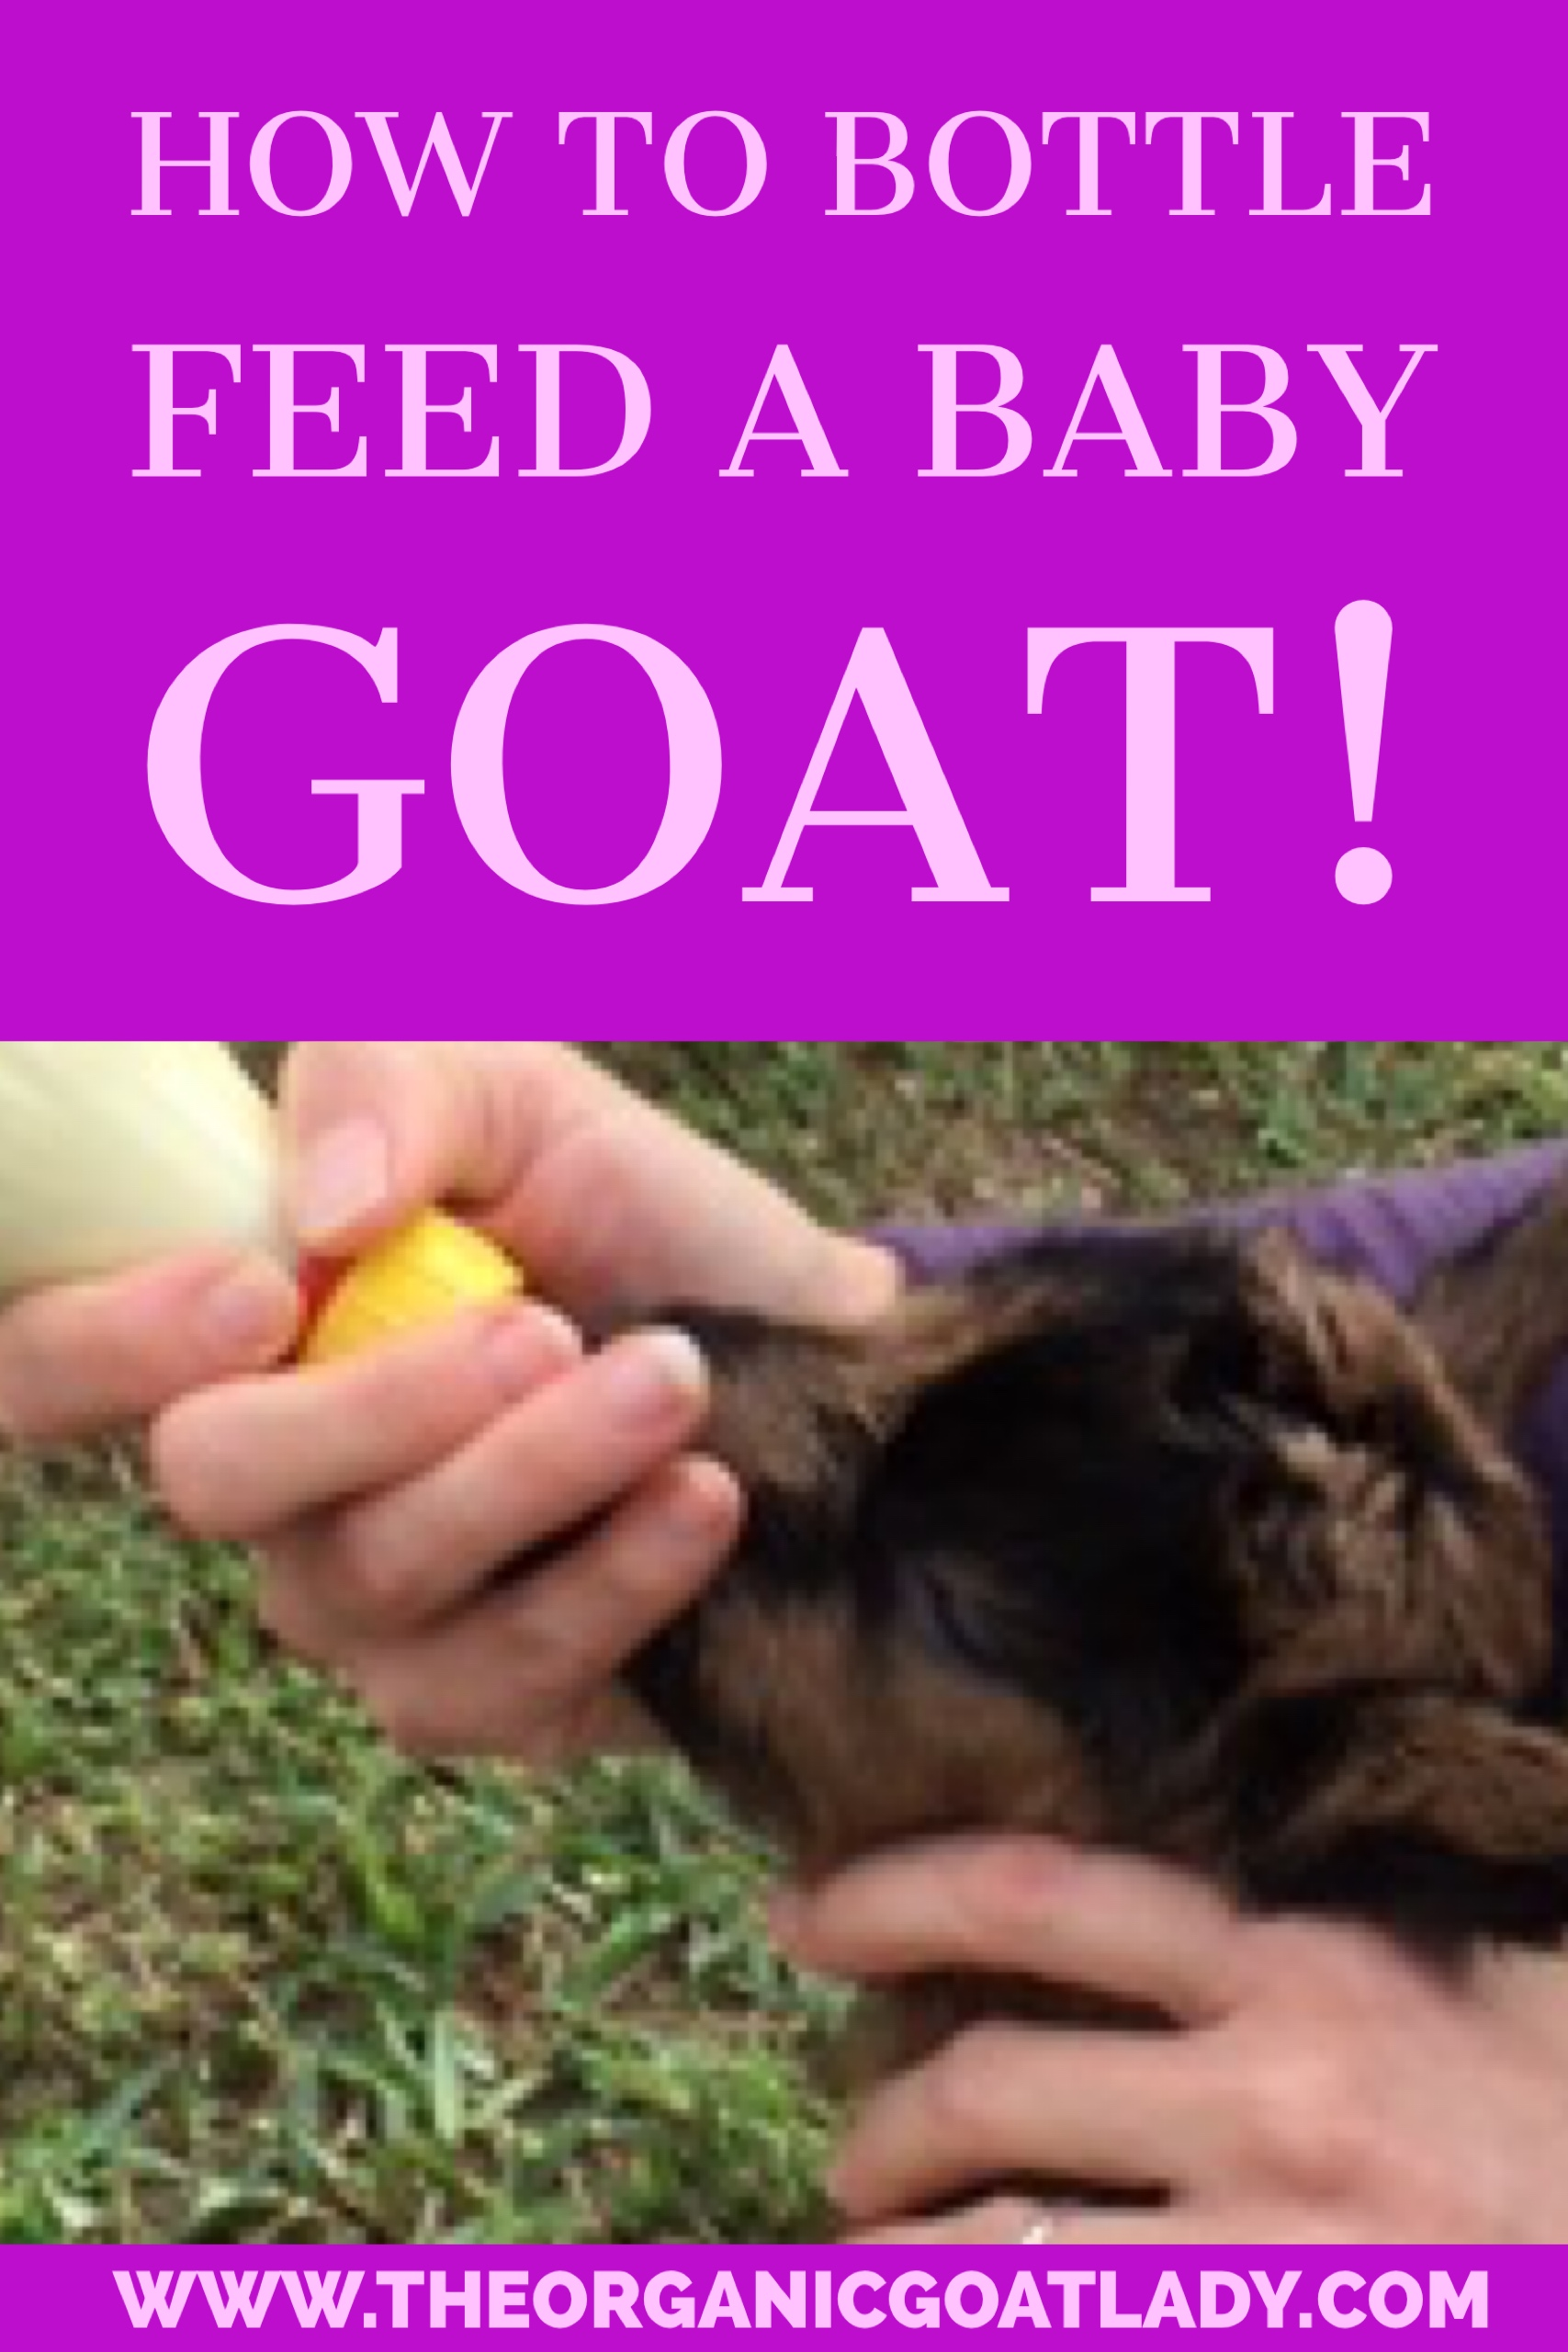 How To Bottlefeed A Baby Goat!